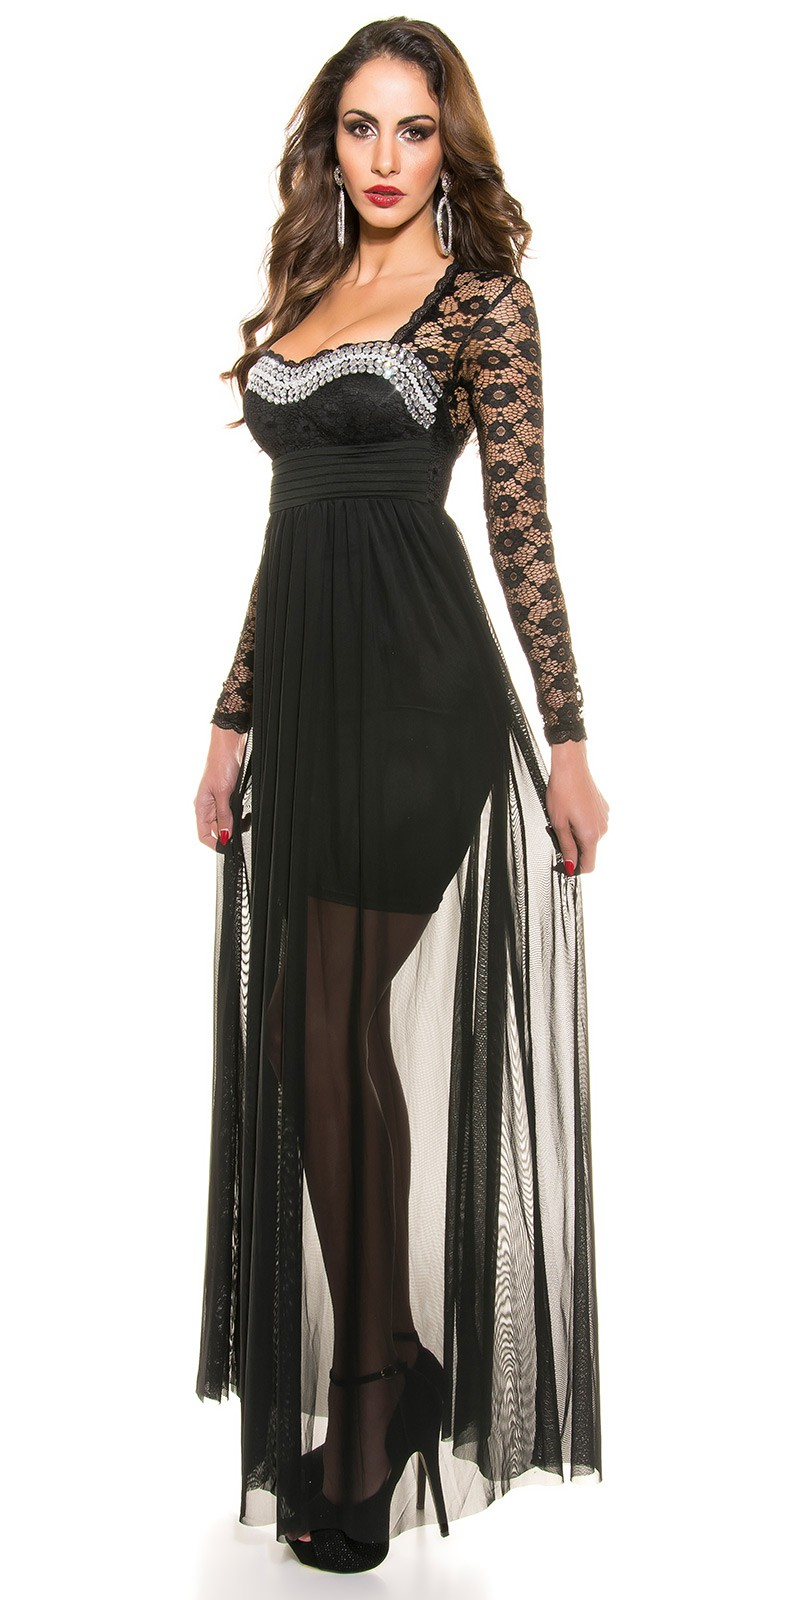 ooKoucla evening dress with lace  Color BLACK Size S 0000K9141 SCHWARZ 24 ·  Dlhe spolocenske saty s dlhym rukavom 447fee3f82a